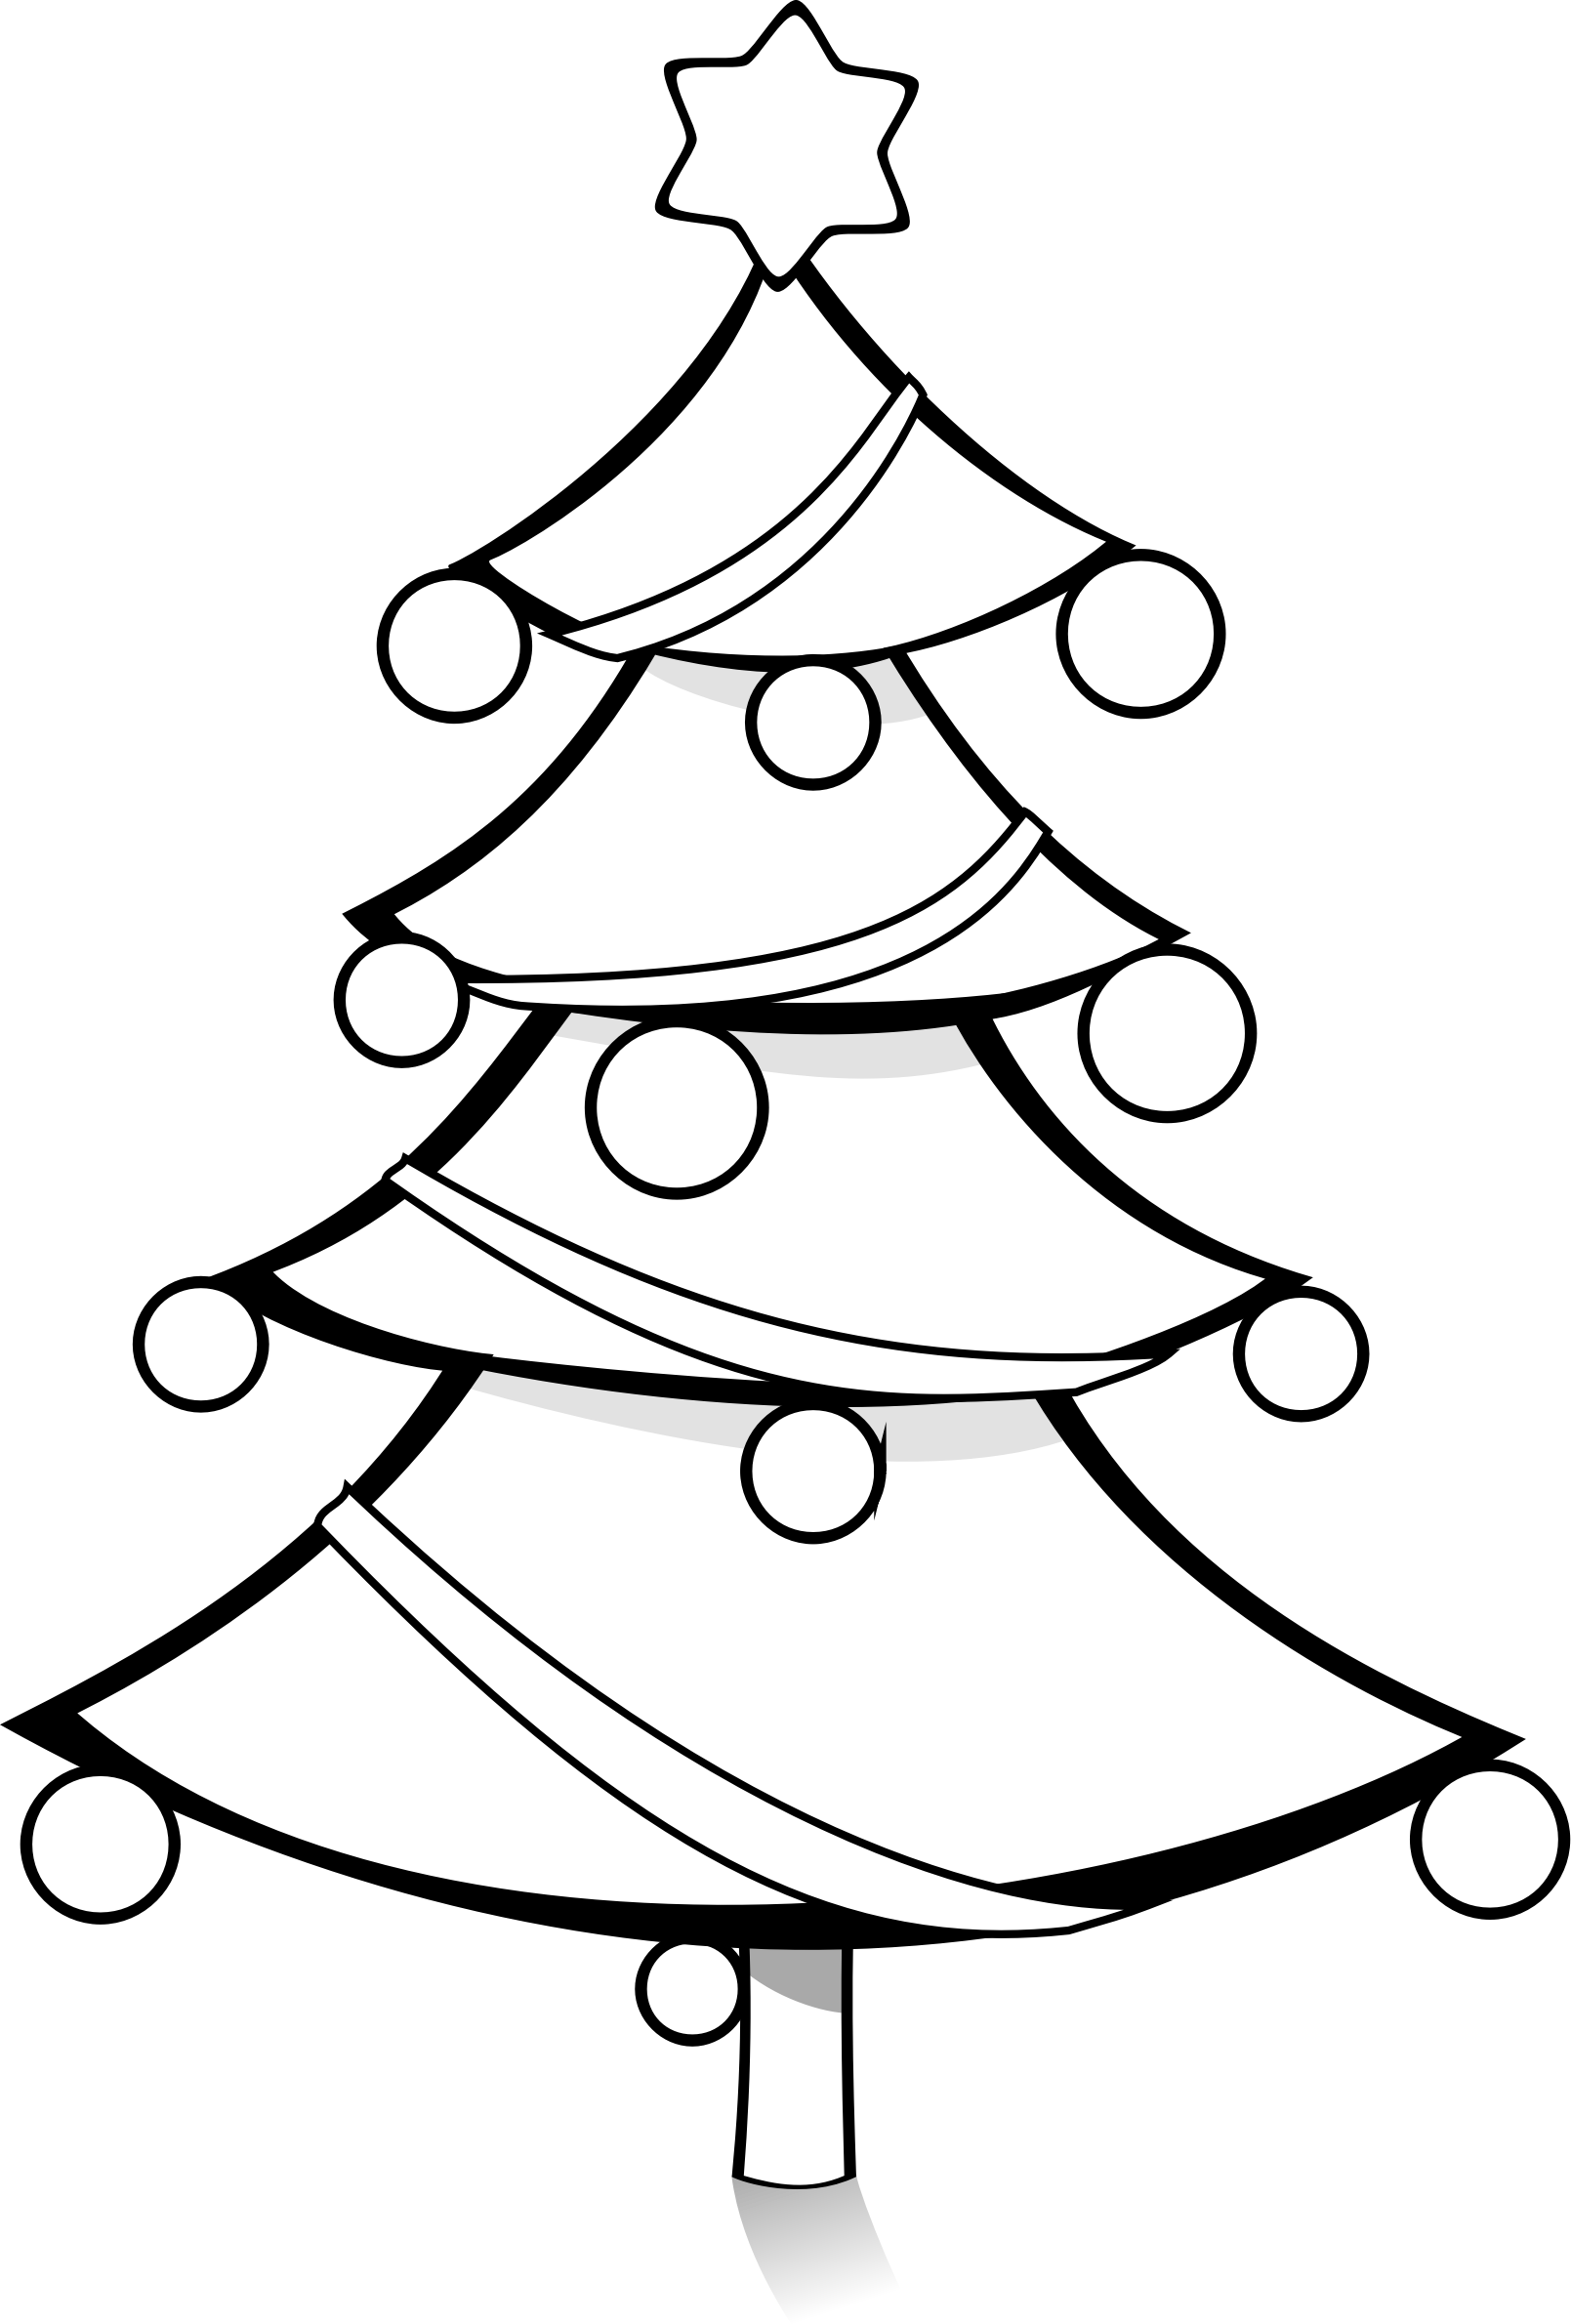 Coloring pages christmas tree blank christmas tree coloring pages - Christmas Tree Coloring Page